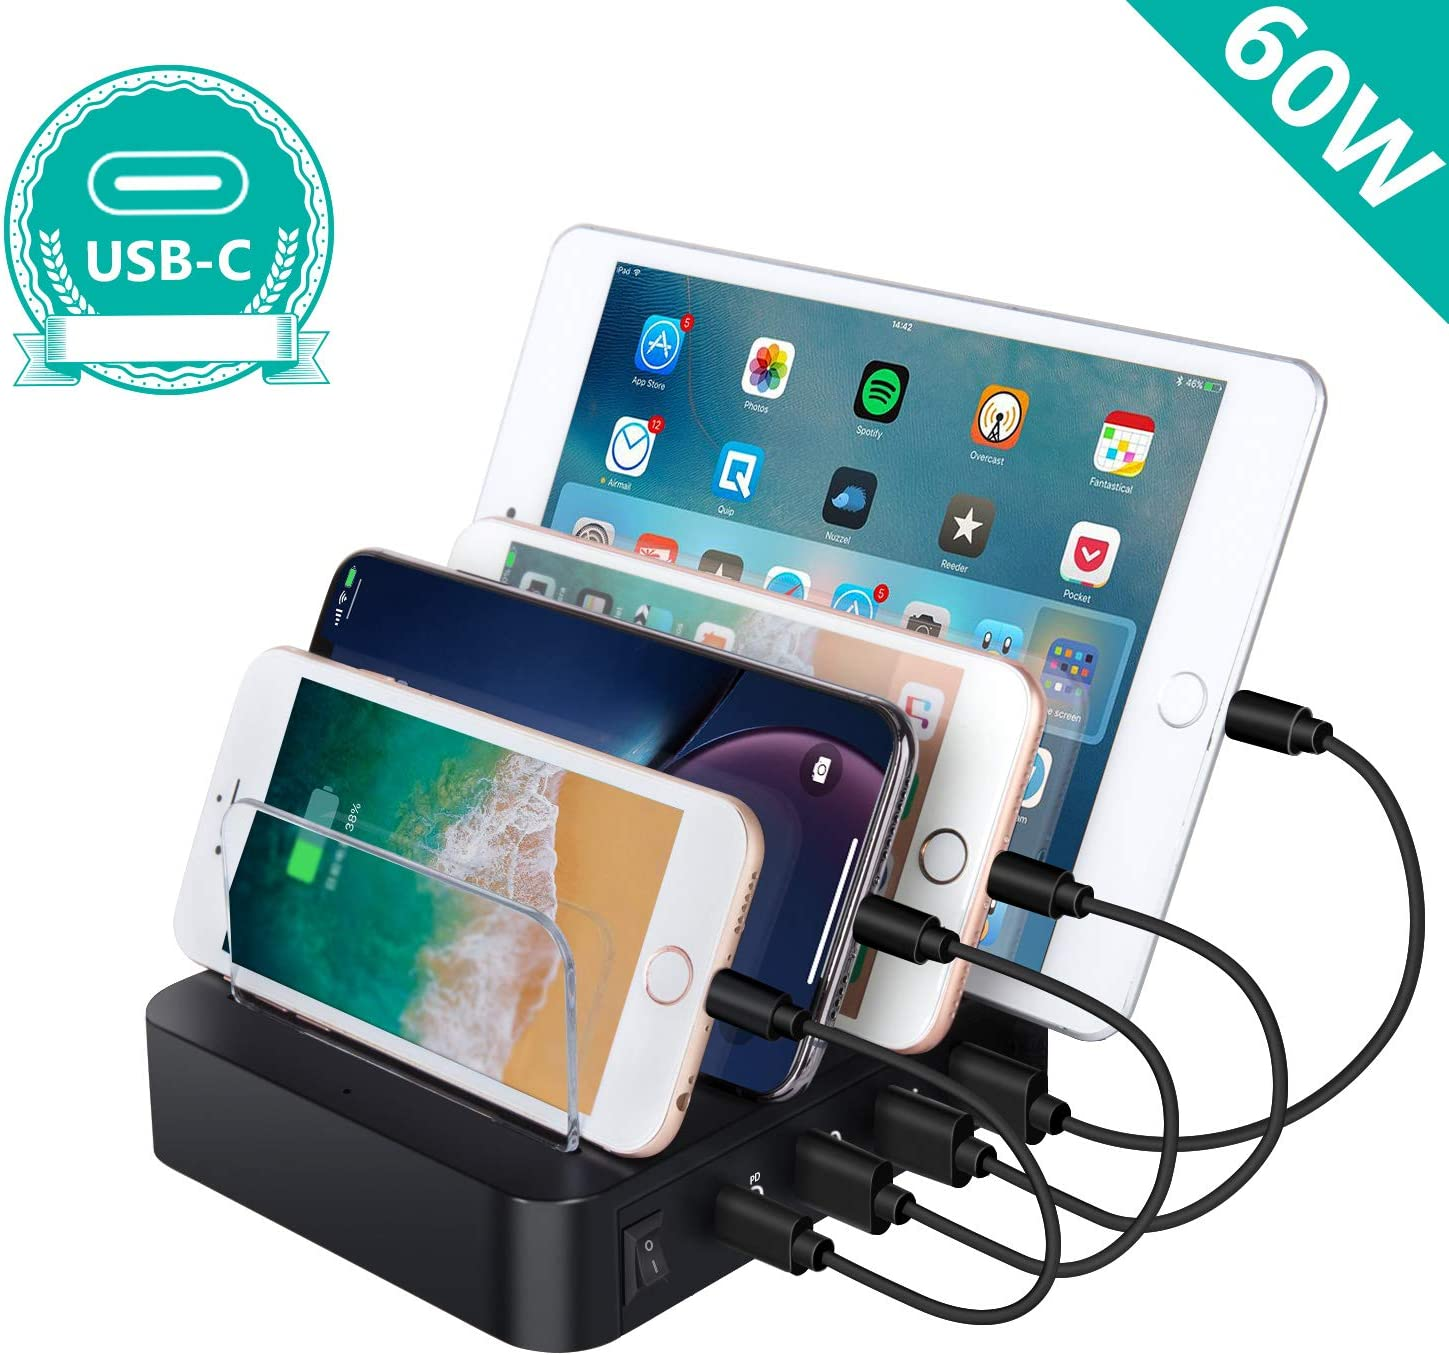 iPad Pro S9//S8 and More USB Charging Station MacBook Pro//Air Premium 60W 4-Port Desktop Charger Organizer With 45W Power Delivery Port For USB-C Laptops And 3 USB Ports For iPhone 11//Pro//Max S10